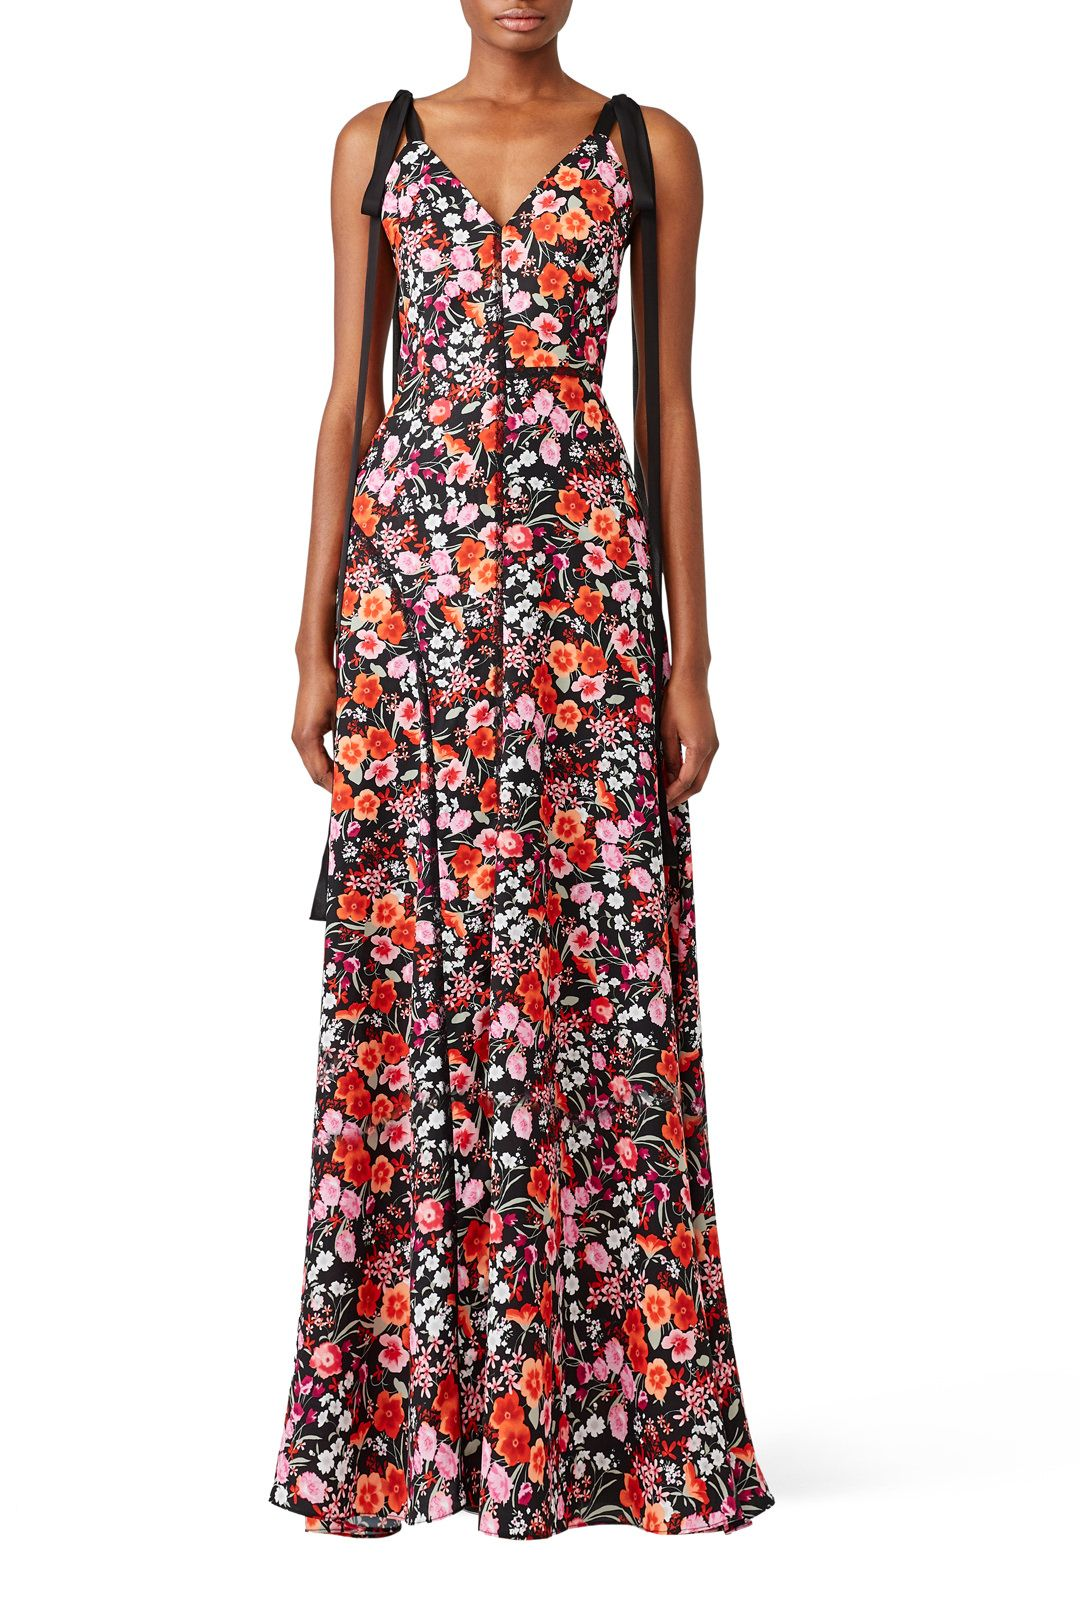 Rent Multi Flower Print Maxi By Goen J For 120 135 Only At Rent The Runway Pink Print Dress Dresses Printed Maxi